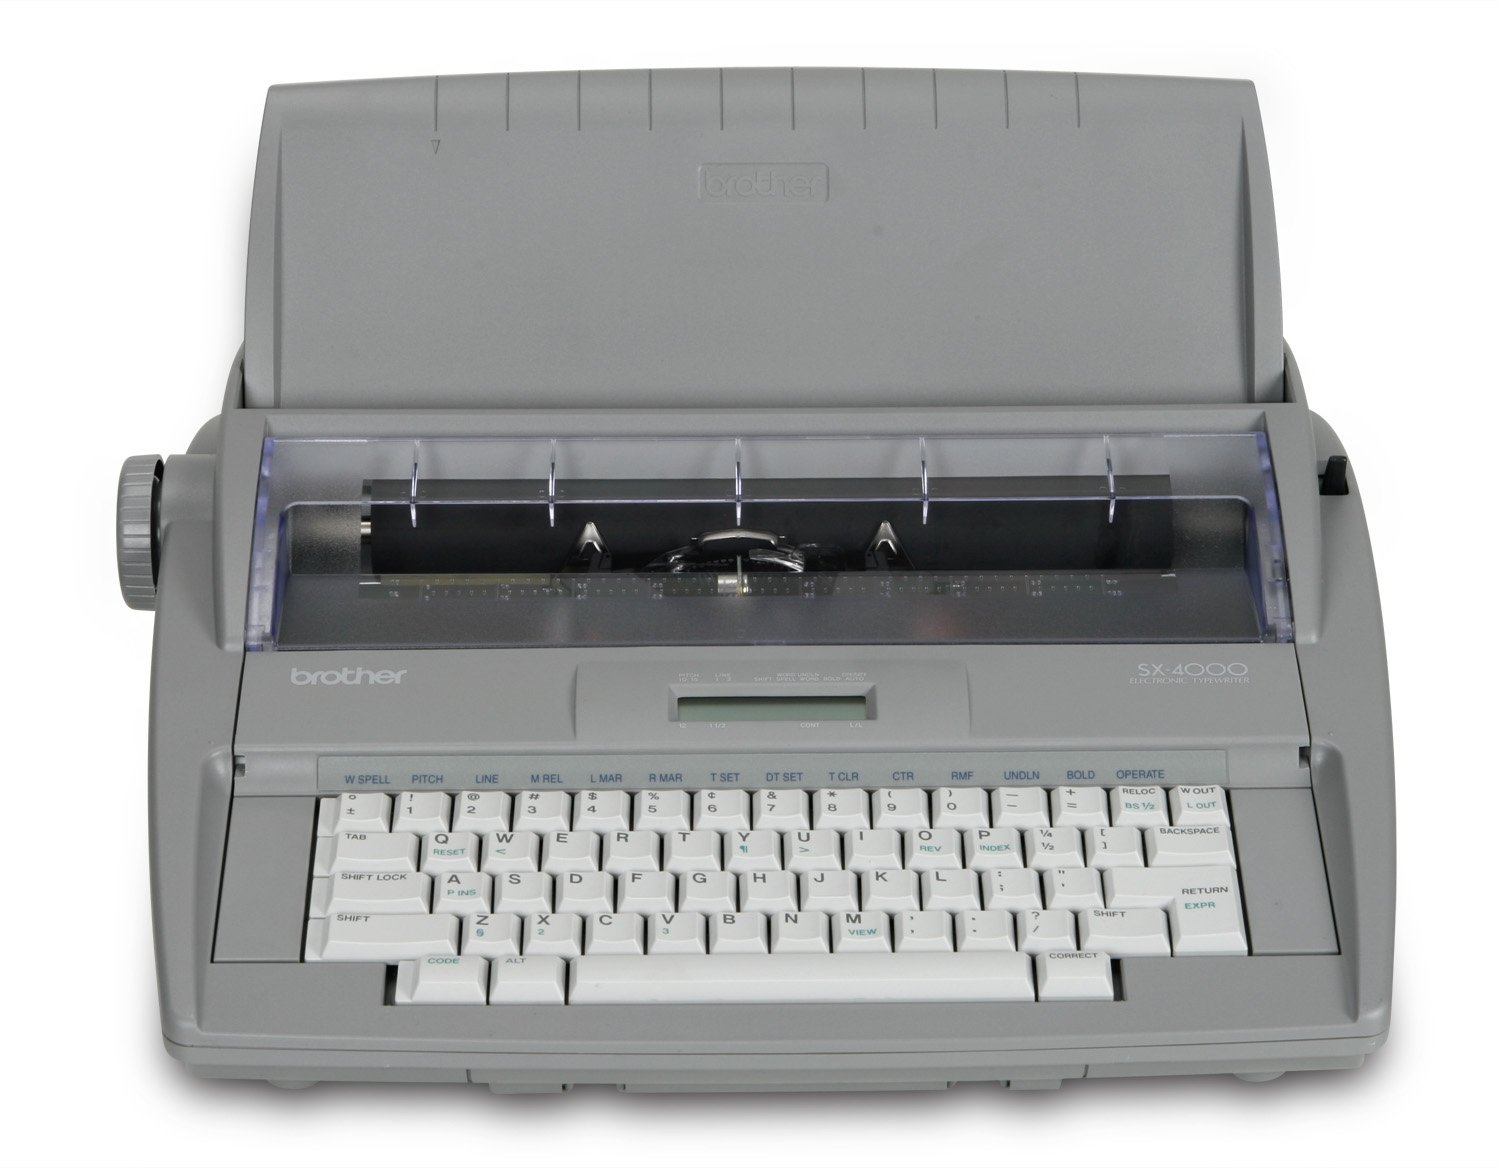 Amazon.com: Brother Printer RSX4000 Electronic Typewriter with Dictionary:  Electronics